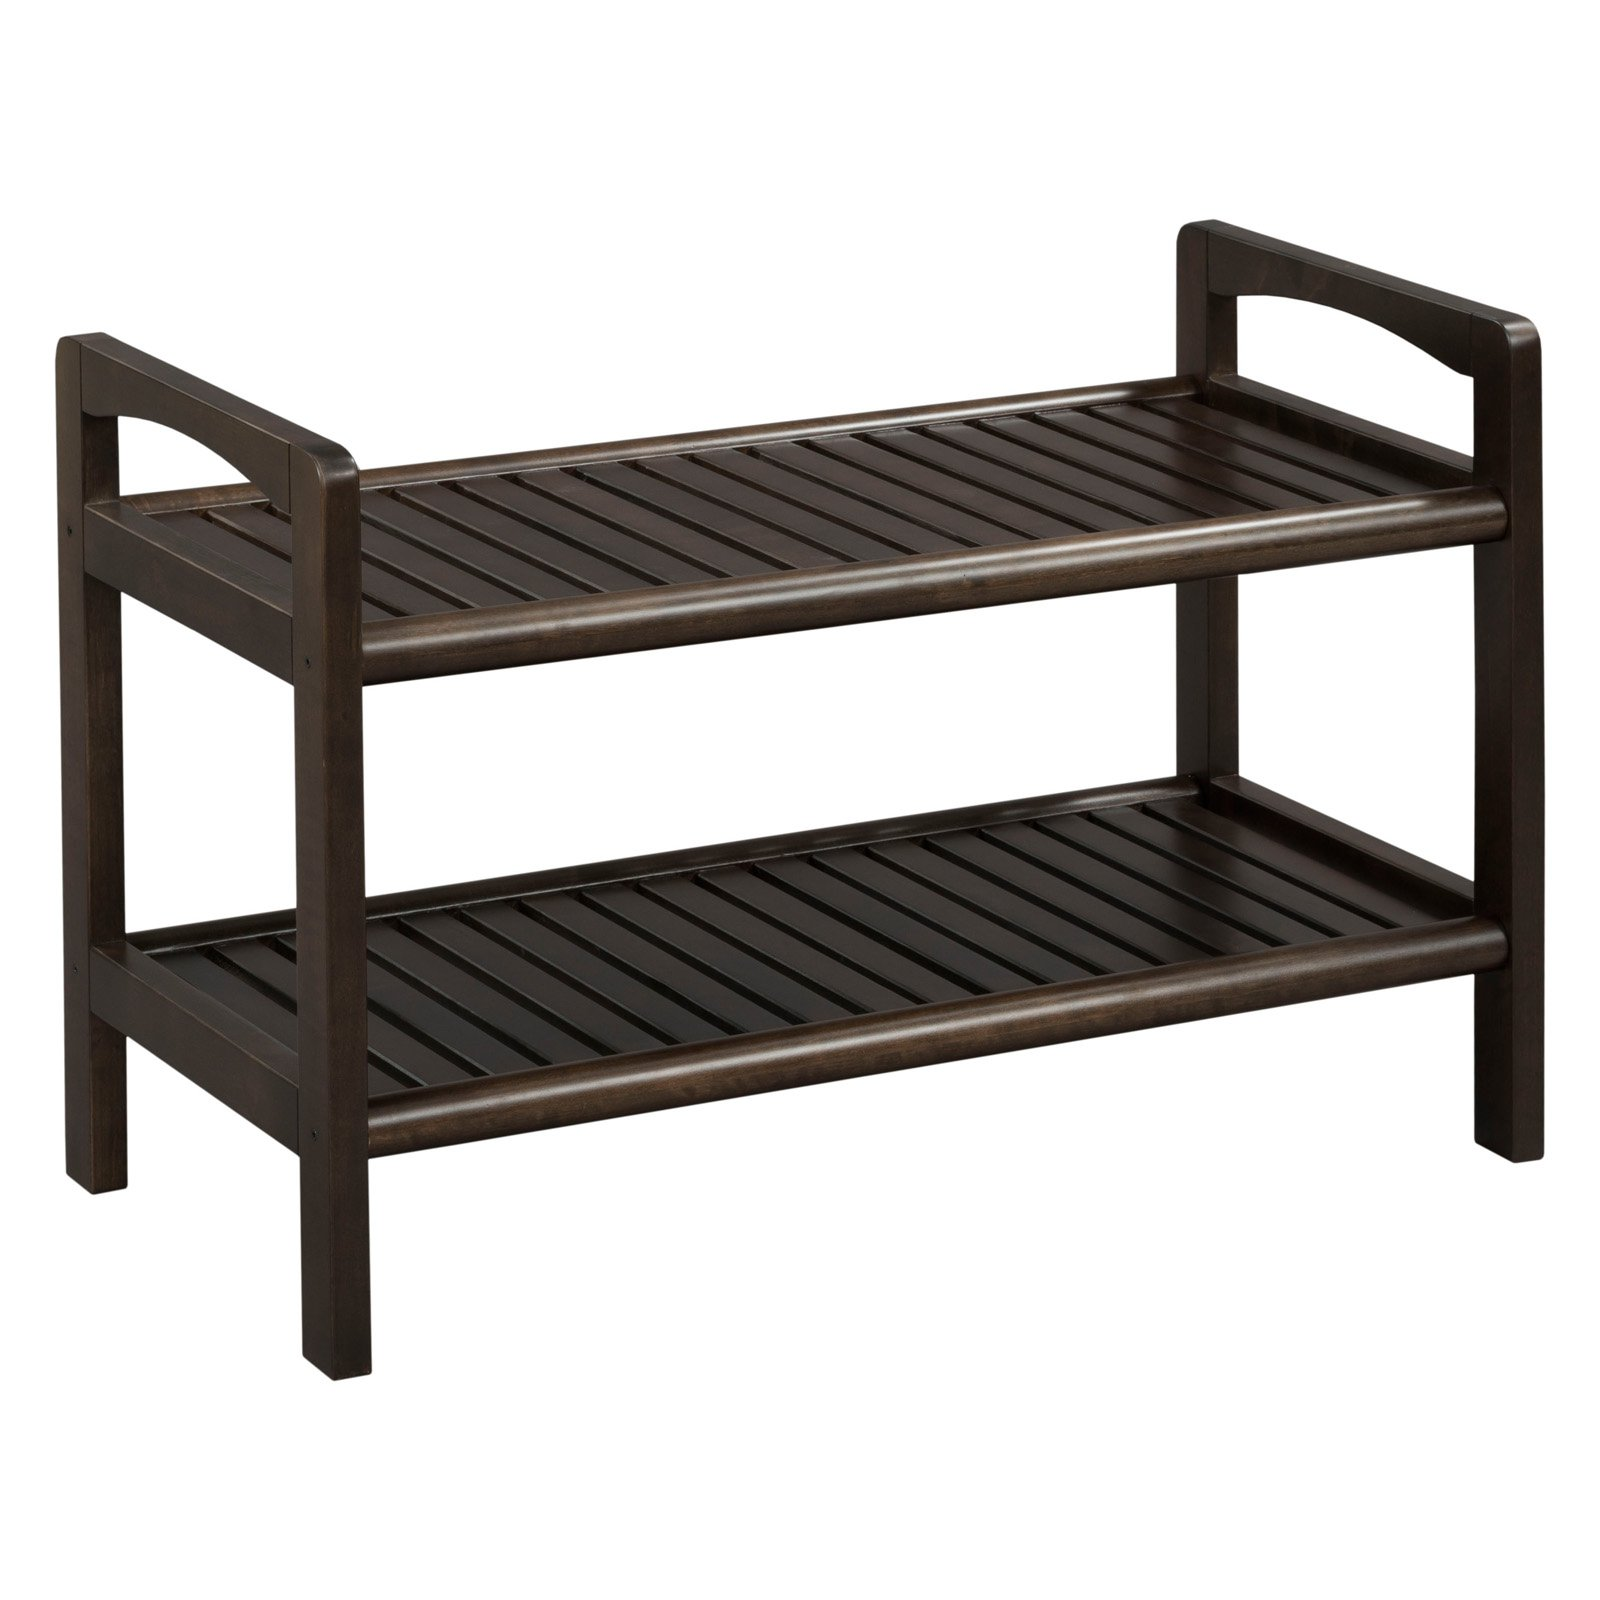 Abingdon Solid Birch Wood Large Bench